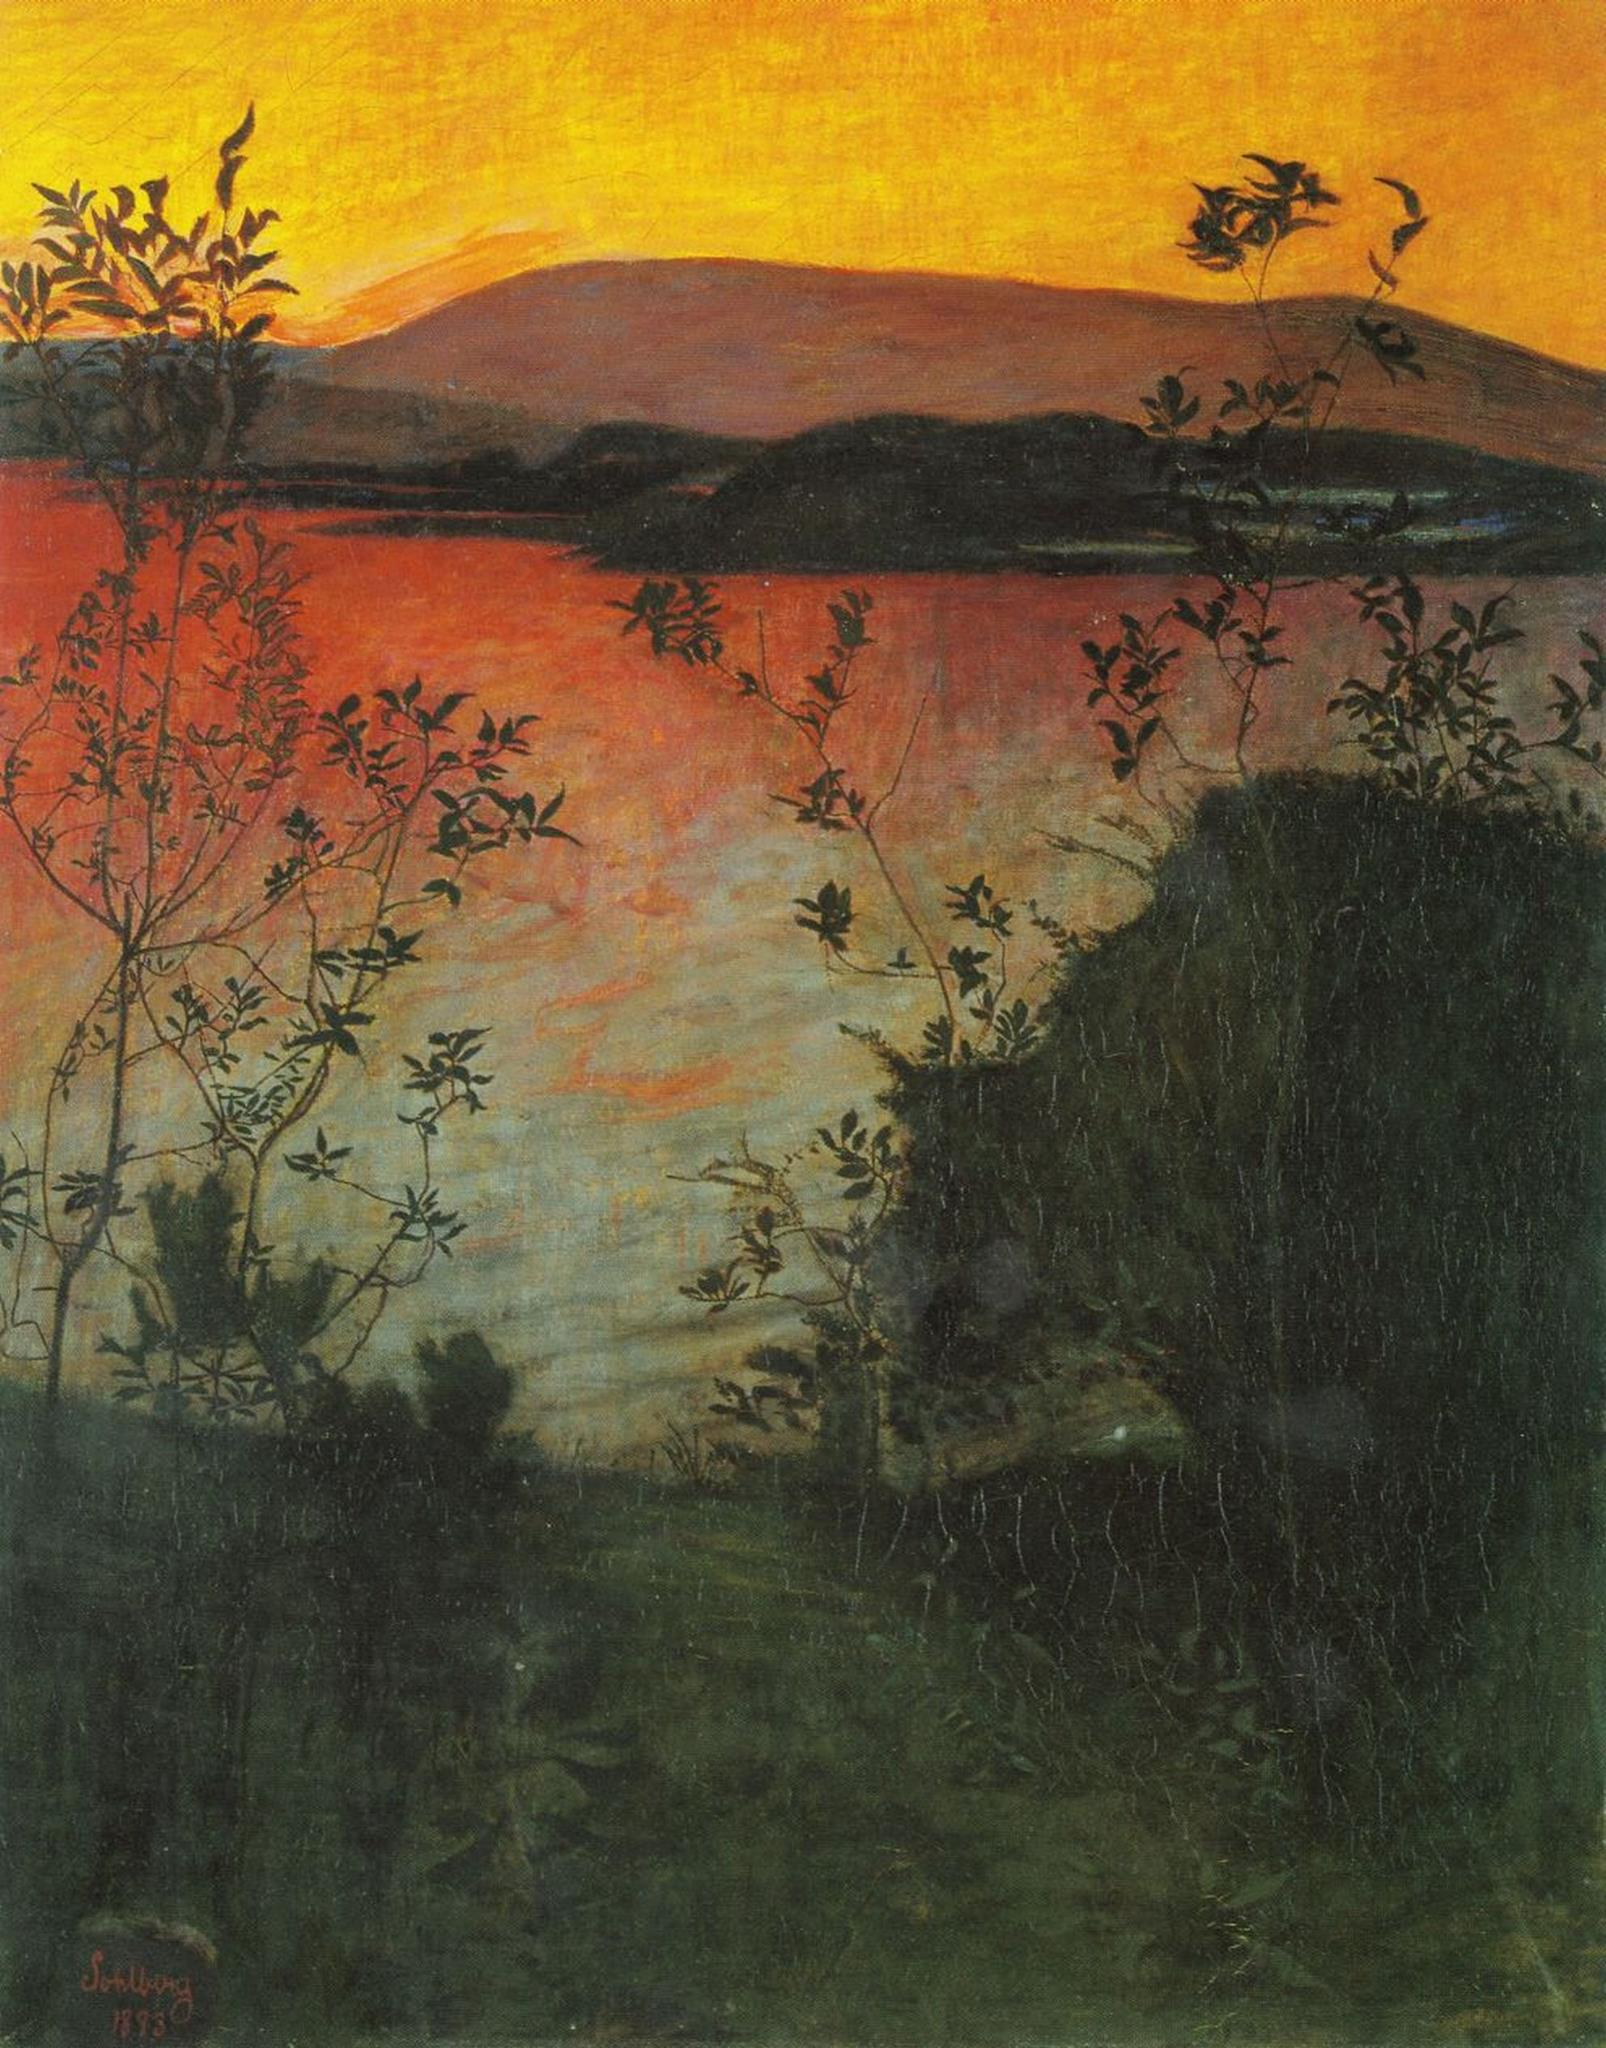 Harald Sohlberg, Natteglød  (English 'evening glow'), 1893. Oil on canvas. Hella provided this image for use with this interview.